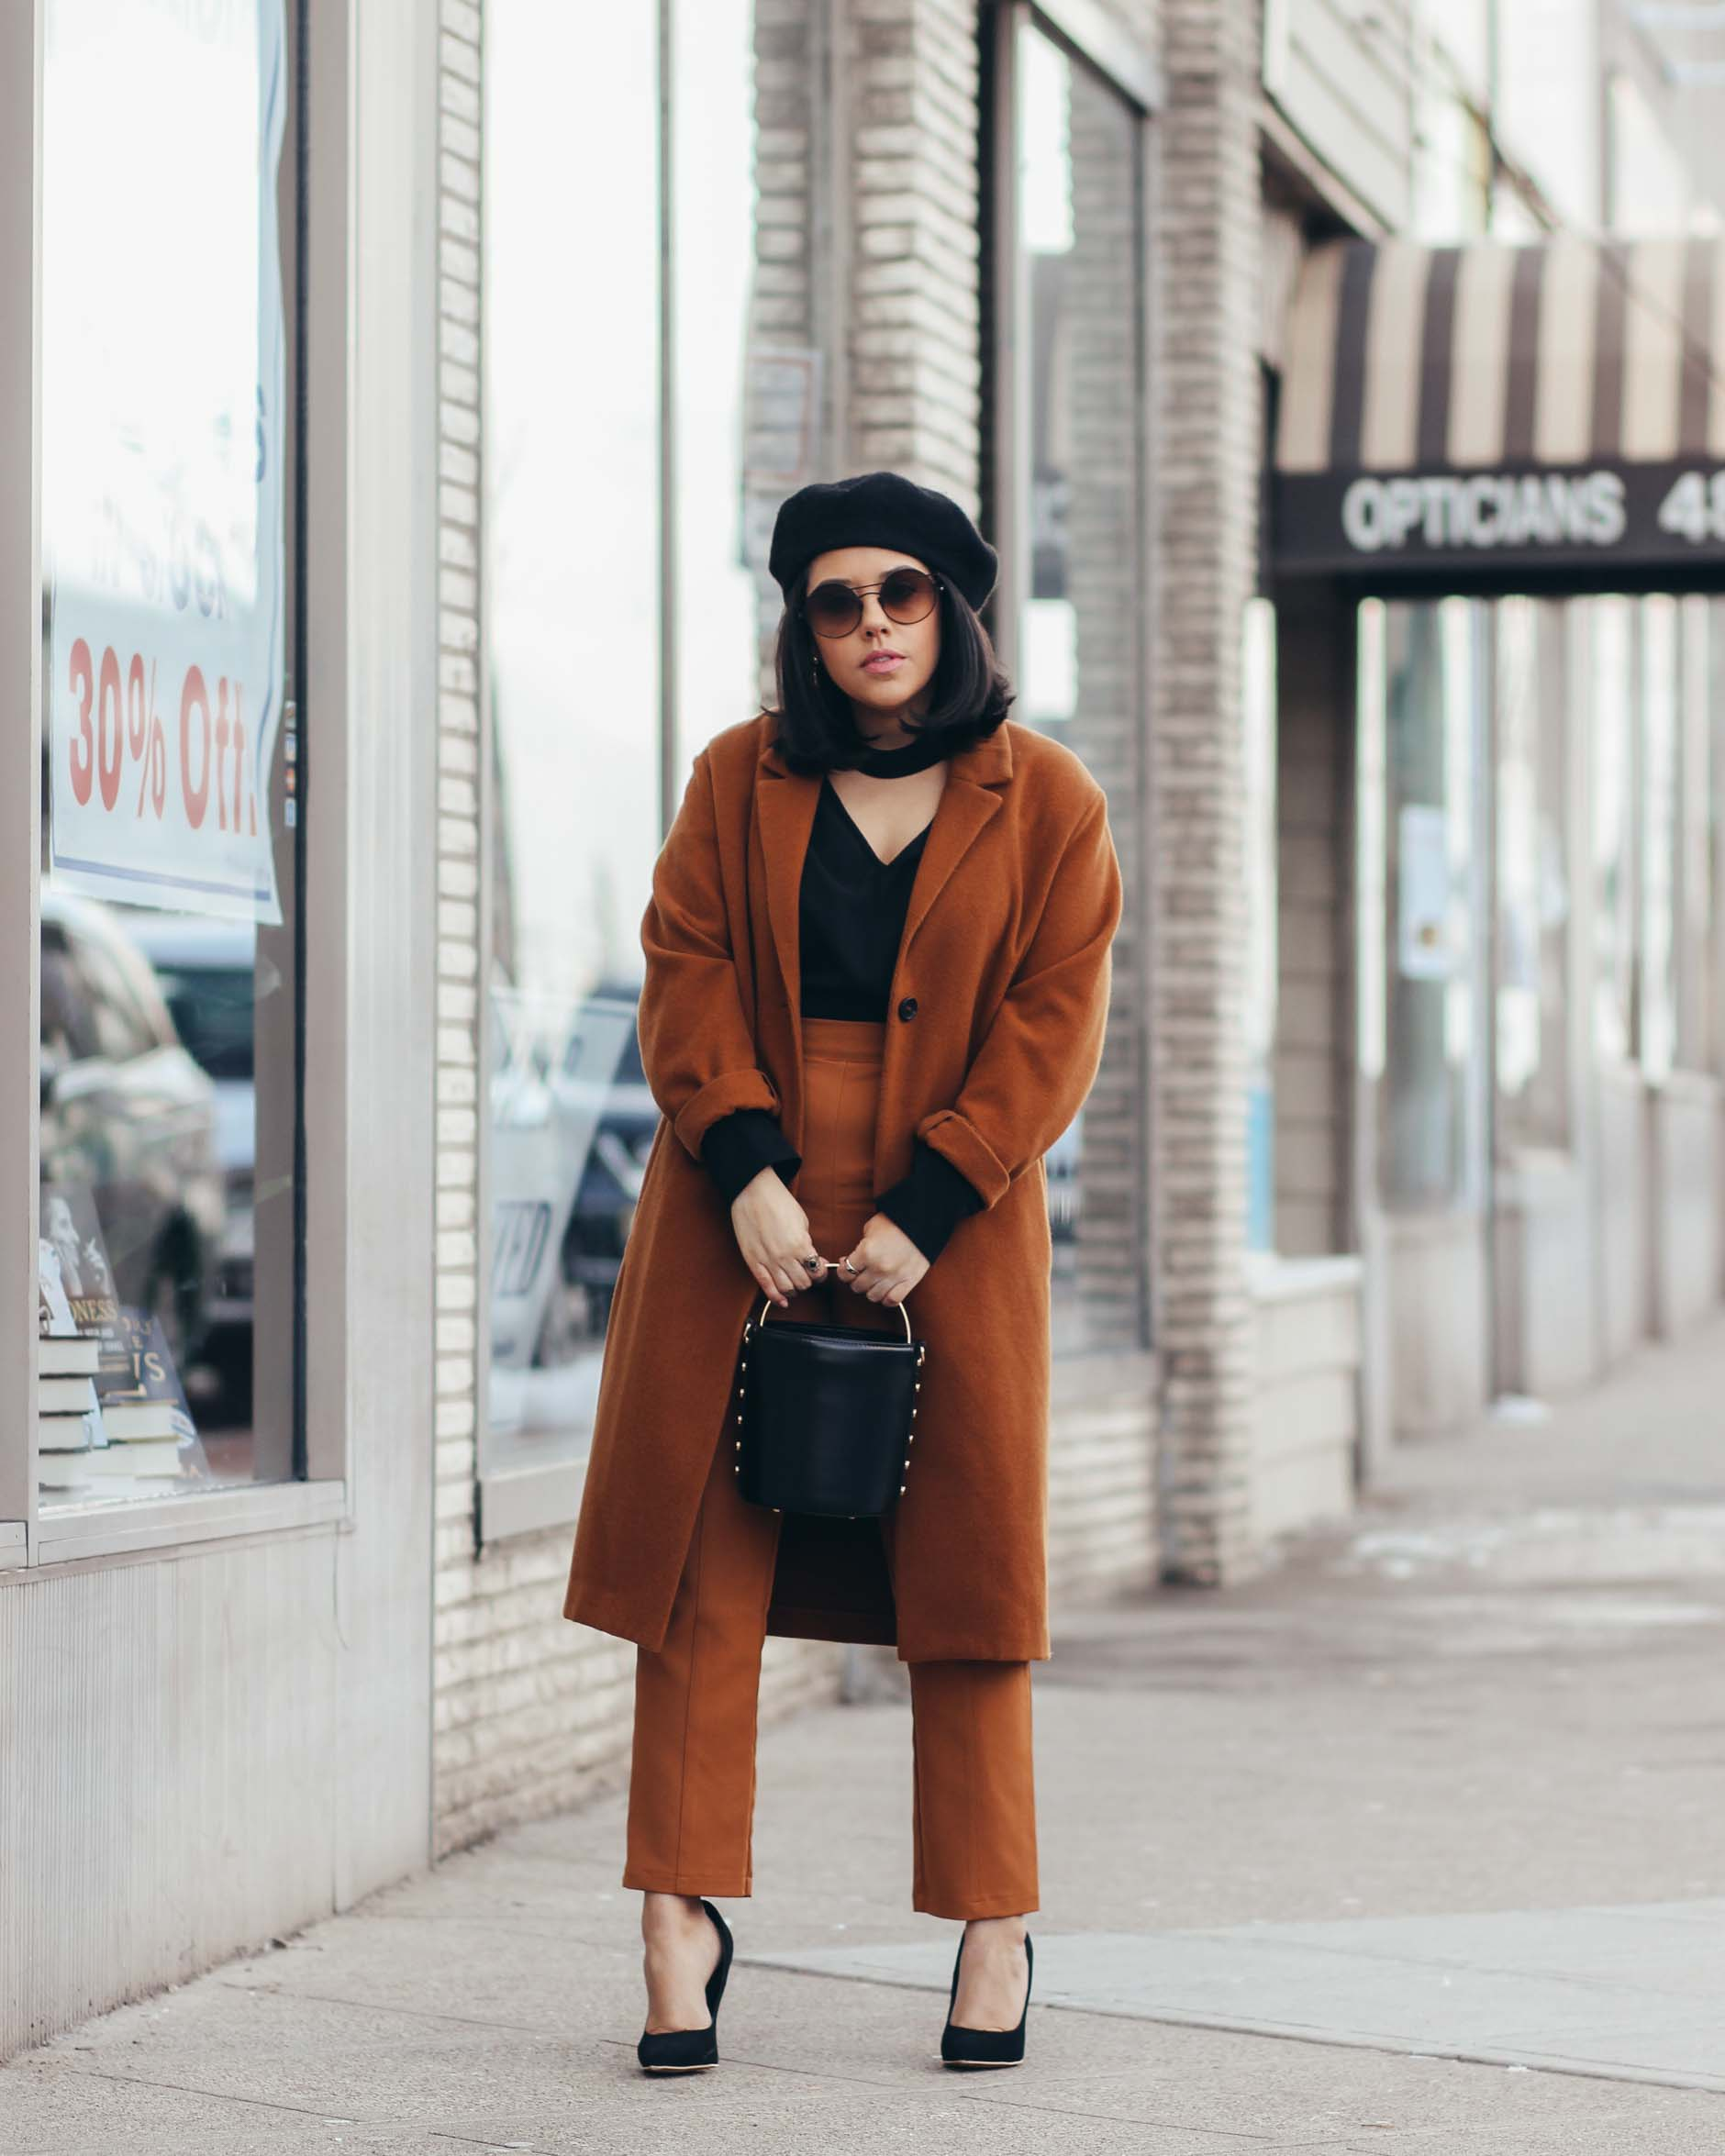 lifestyle blogger naty michele wearing a camel and black outfit